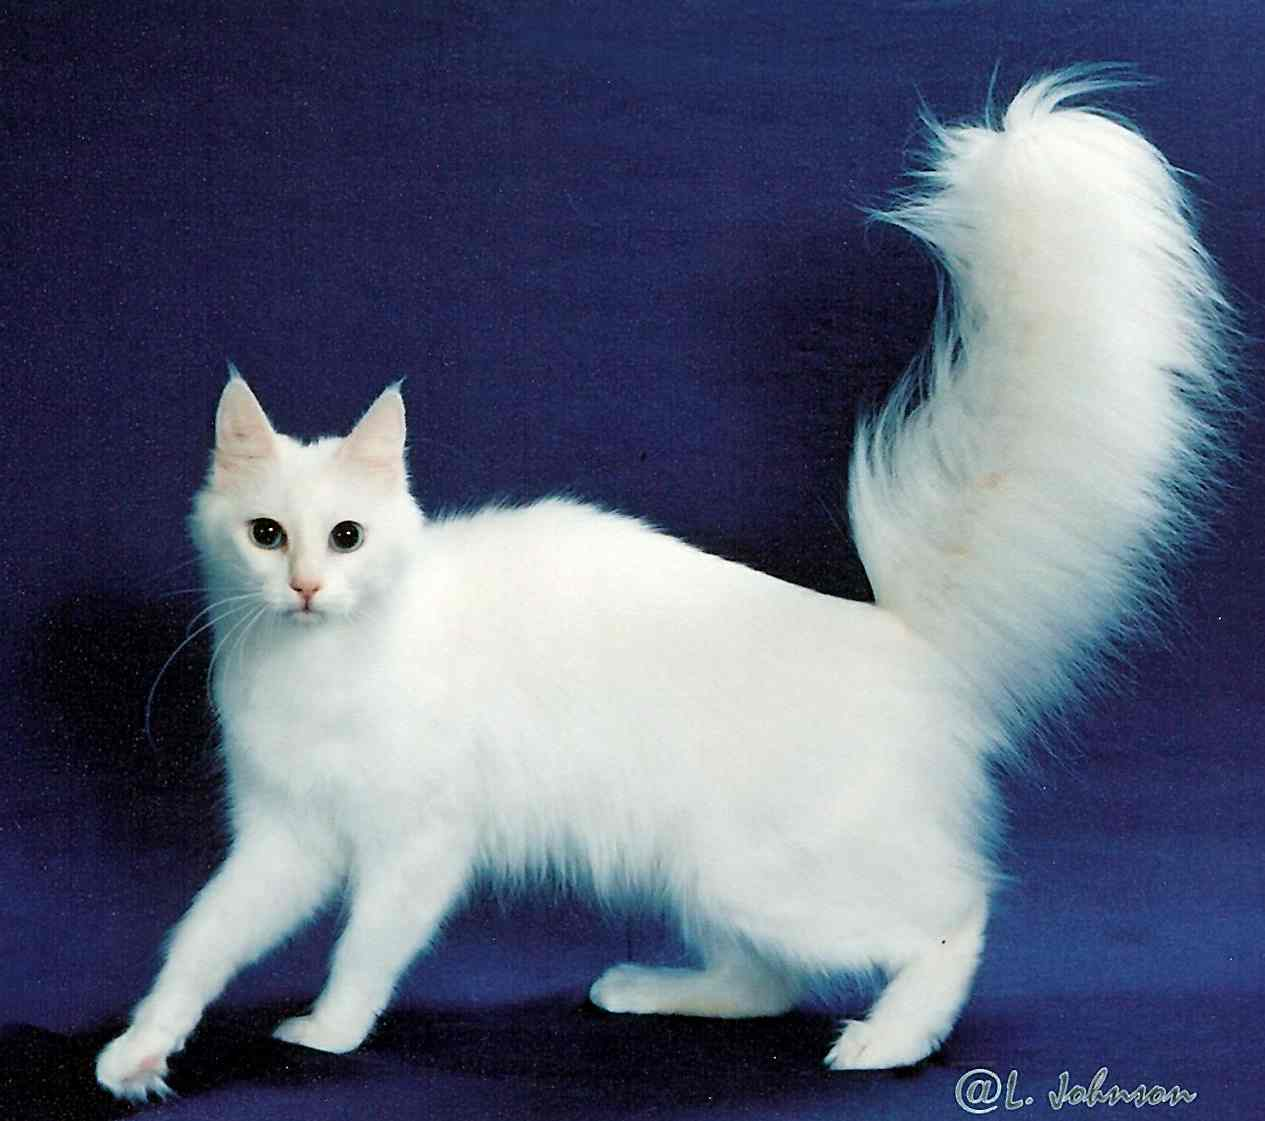 What do angora cats look like